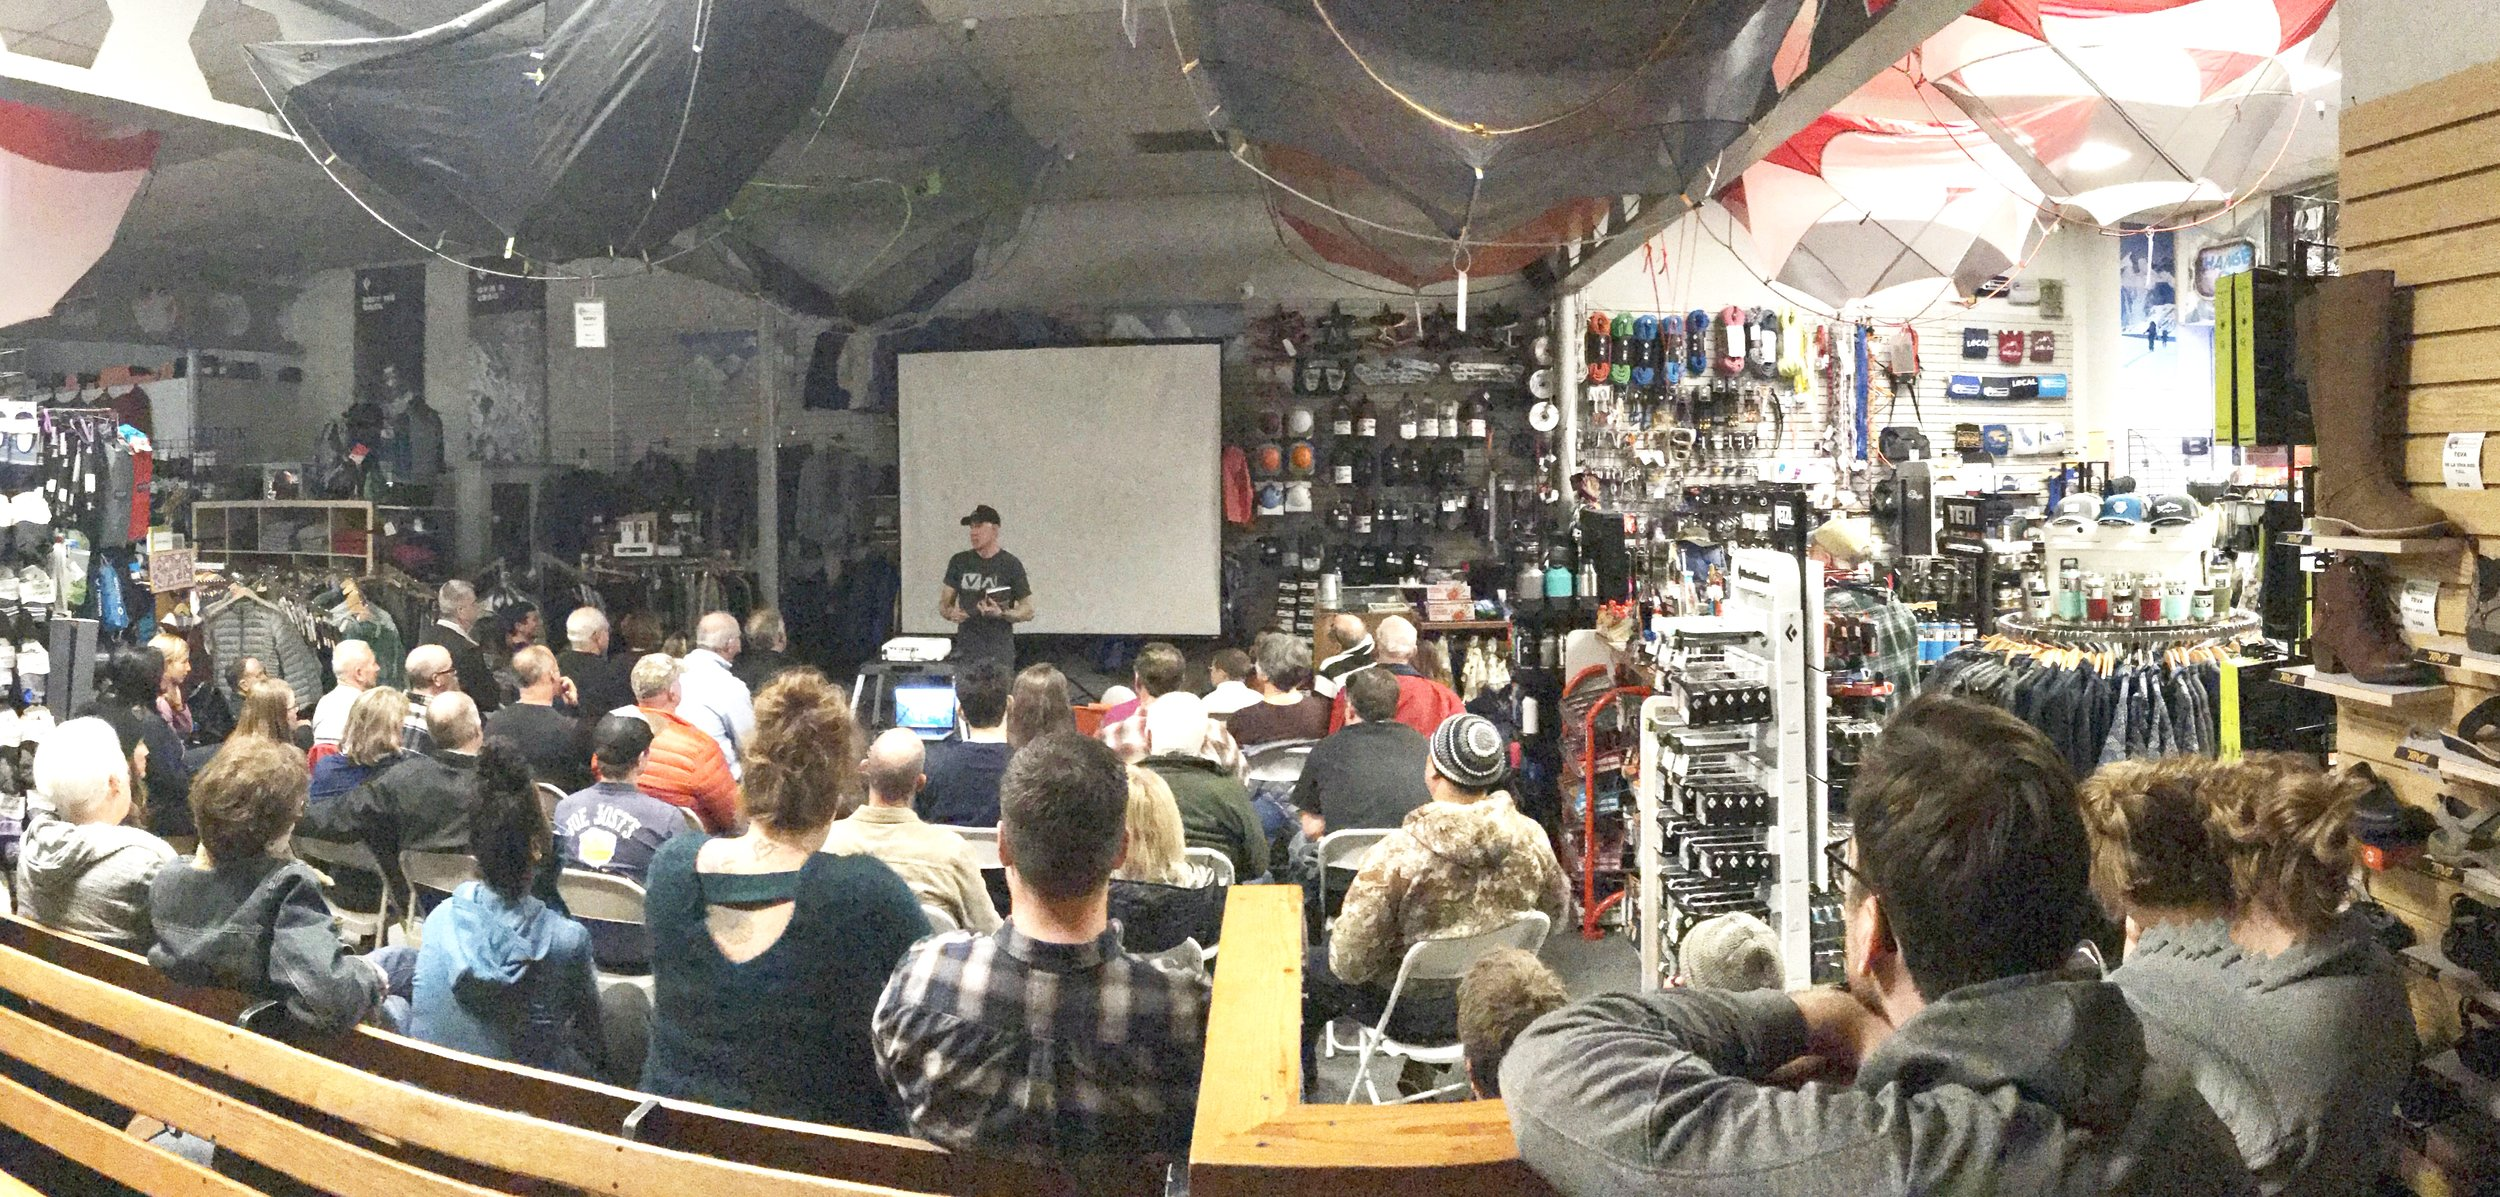 Dean giving a SAR presentation at an outdoor retailer